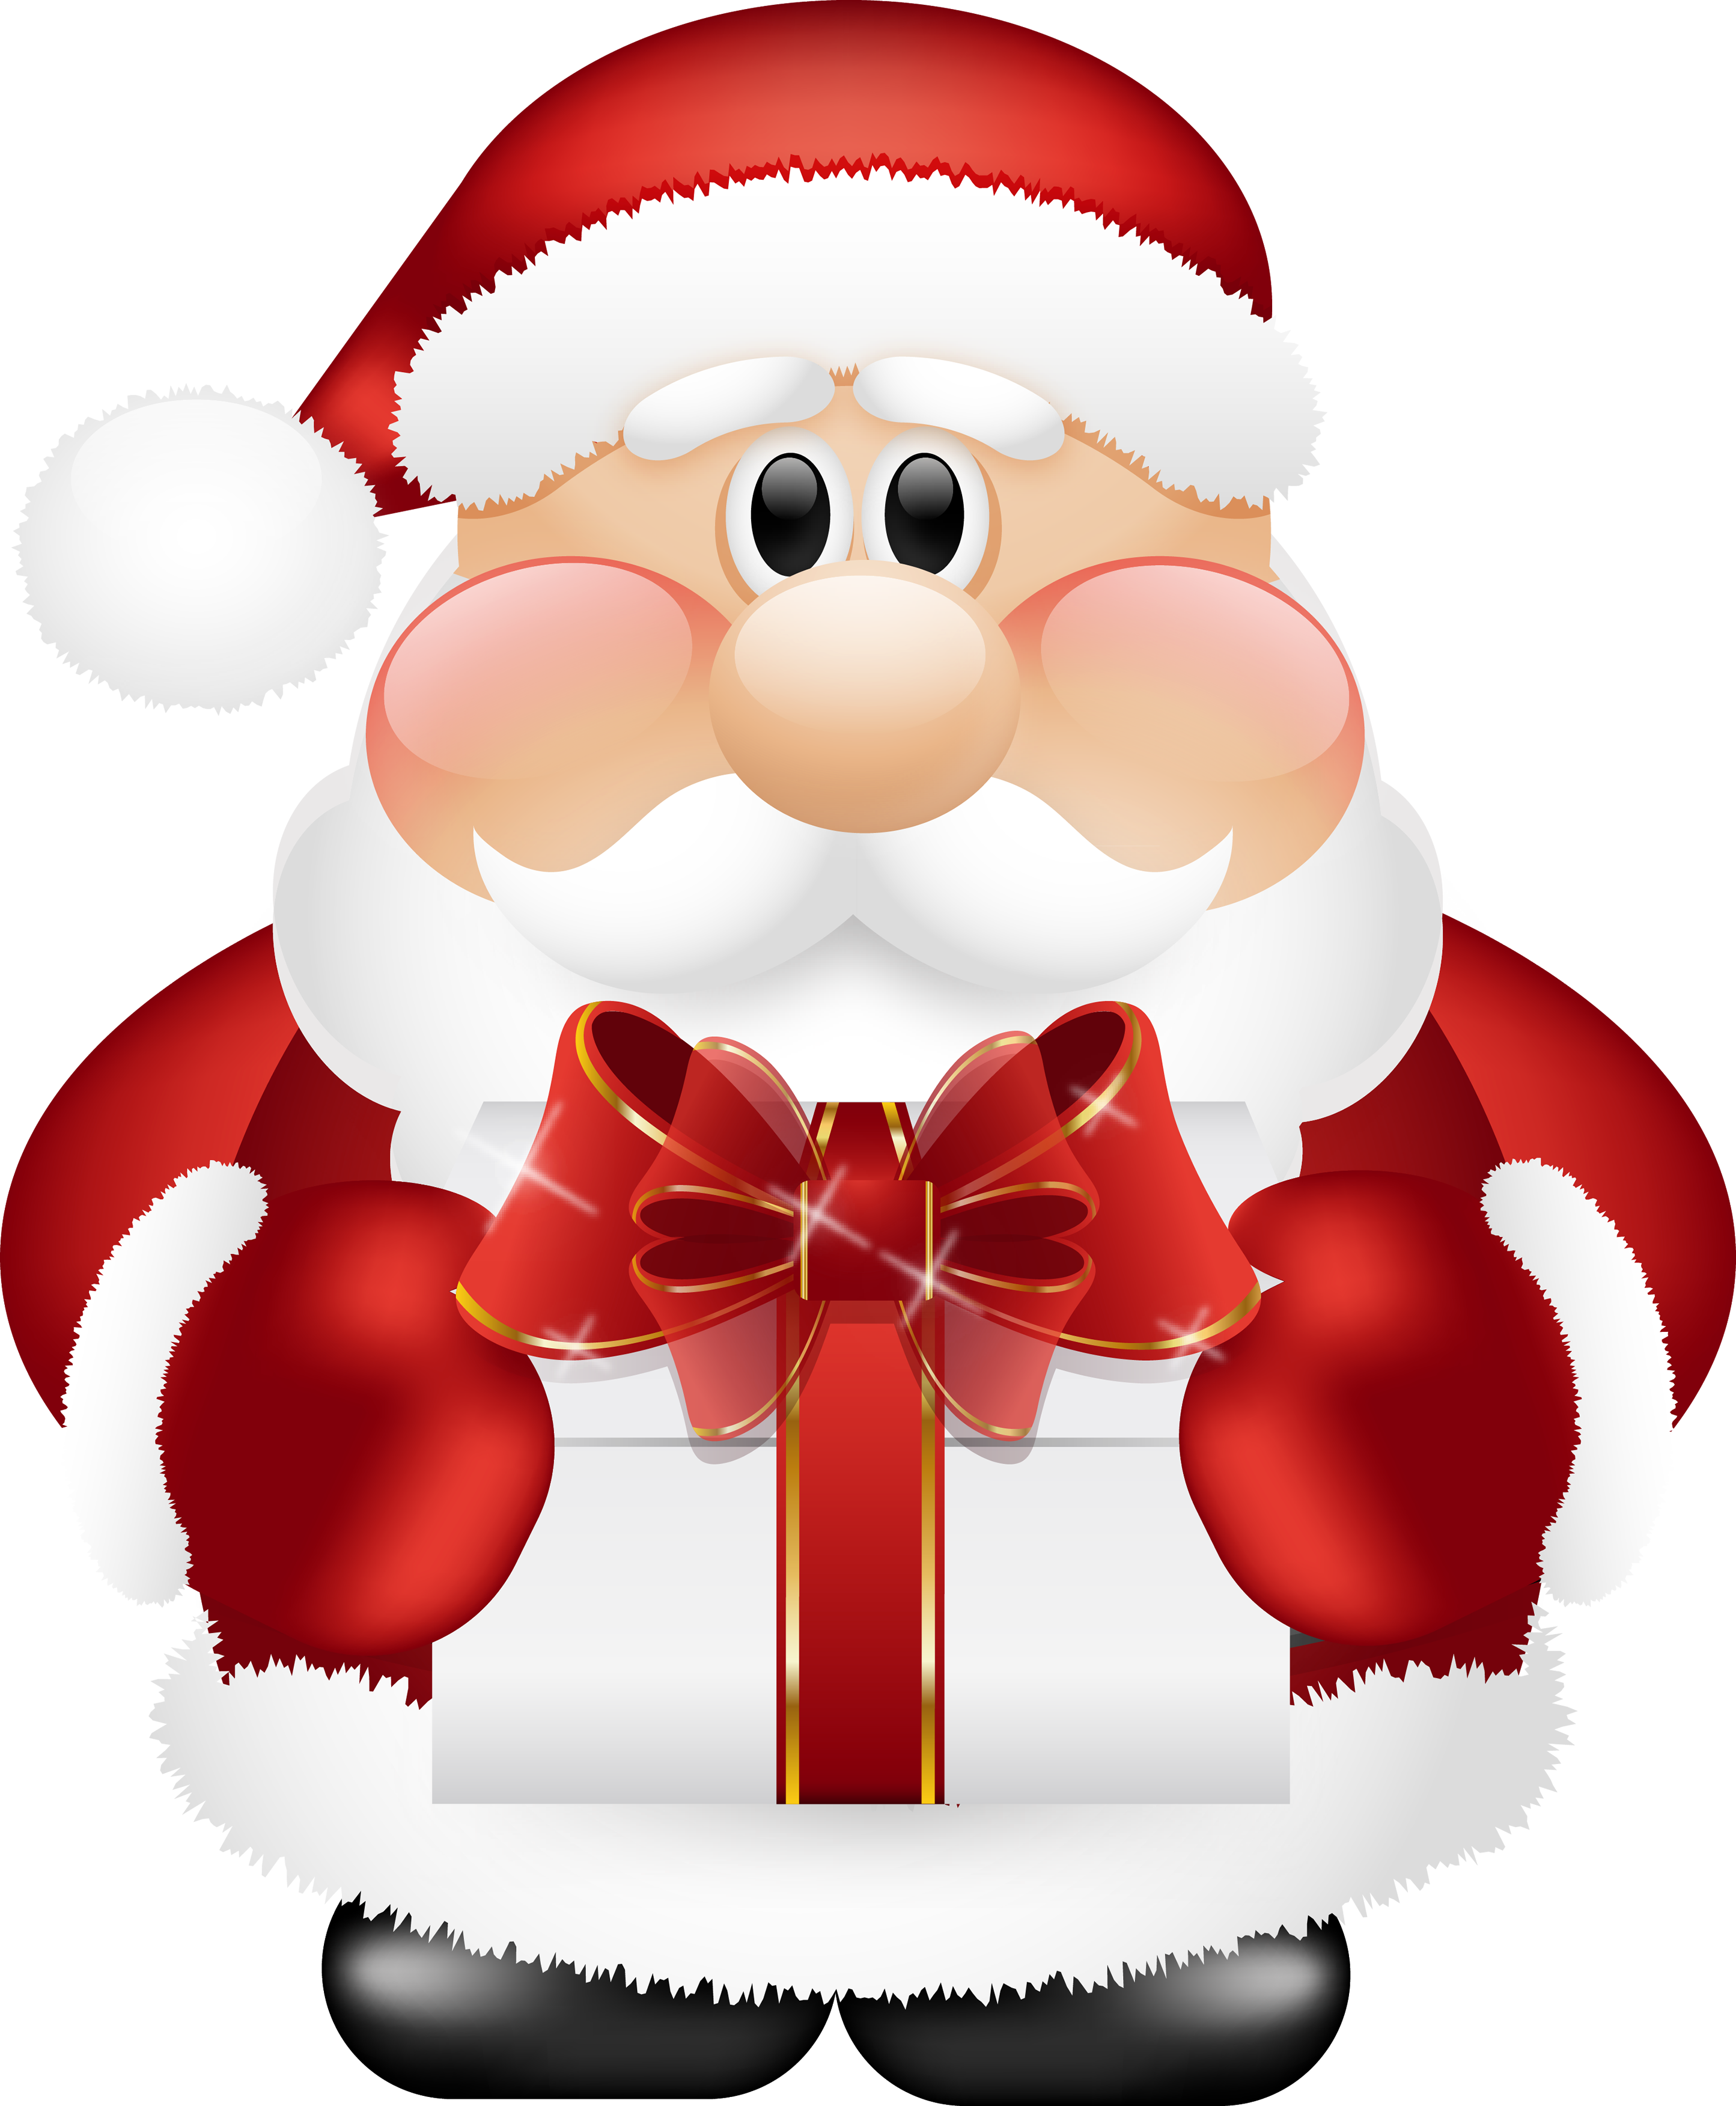 Santa clipart beer. Claus png images free